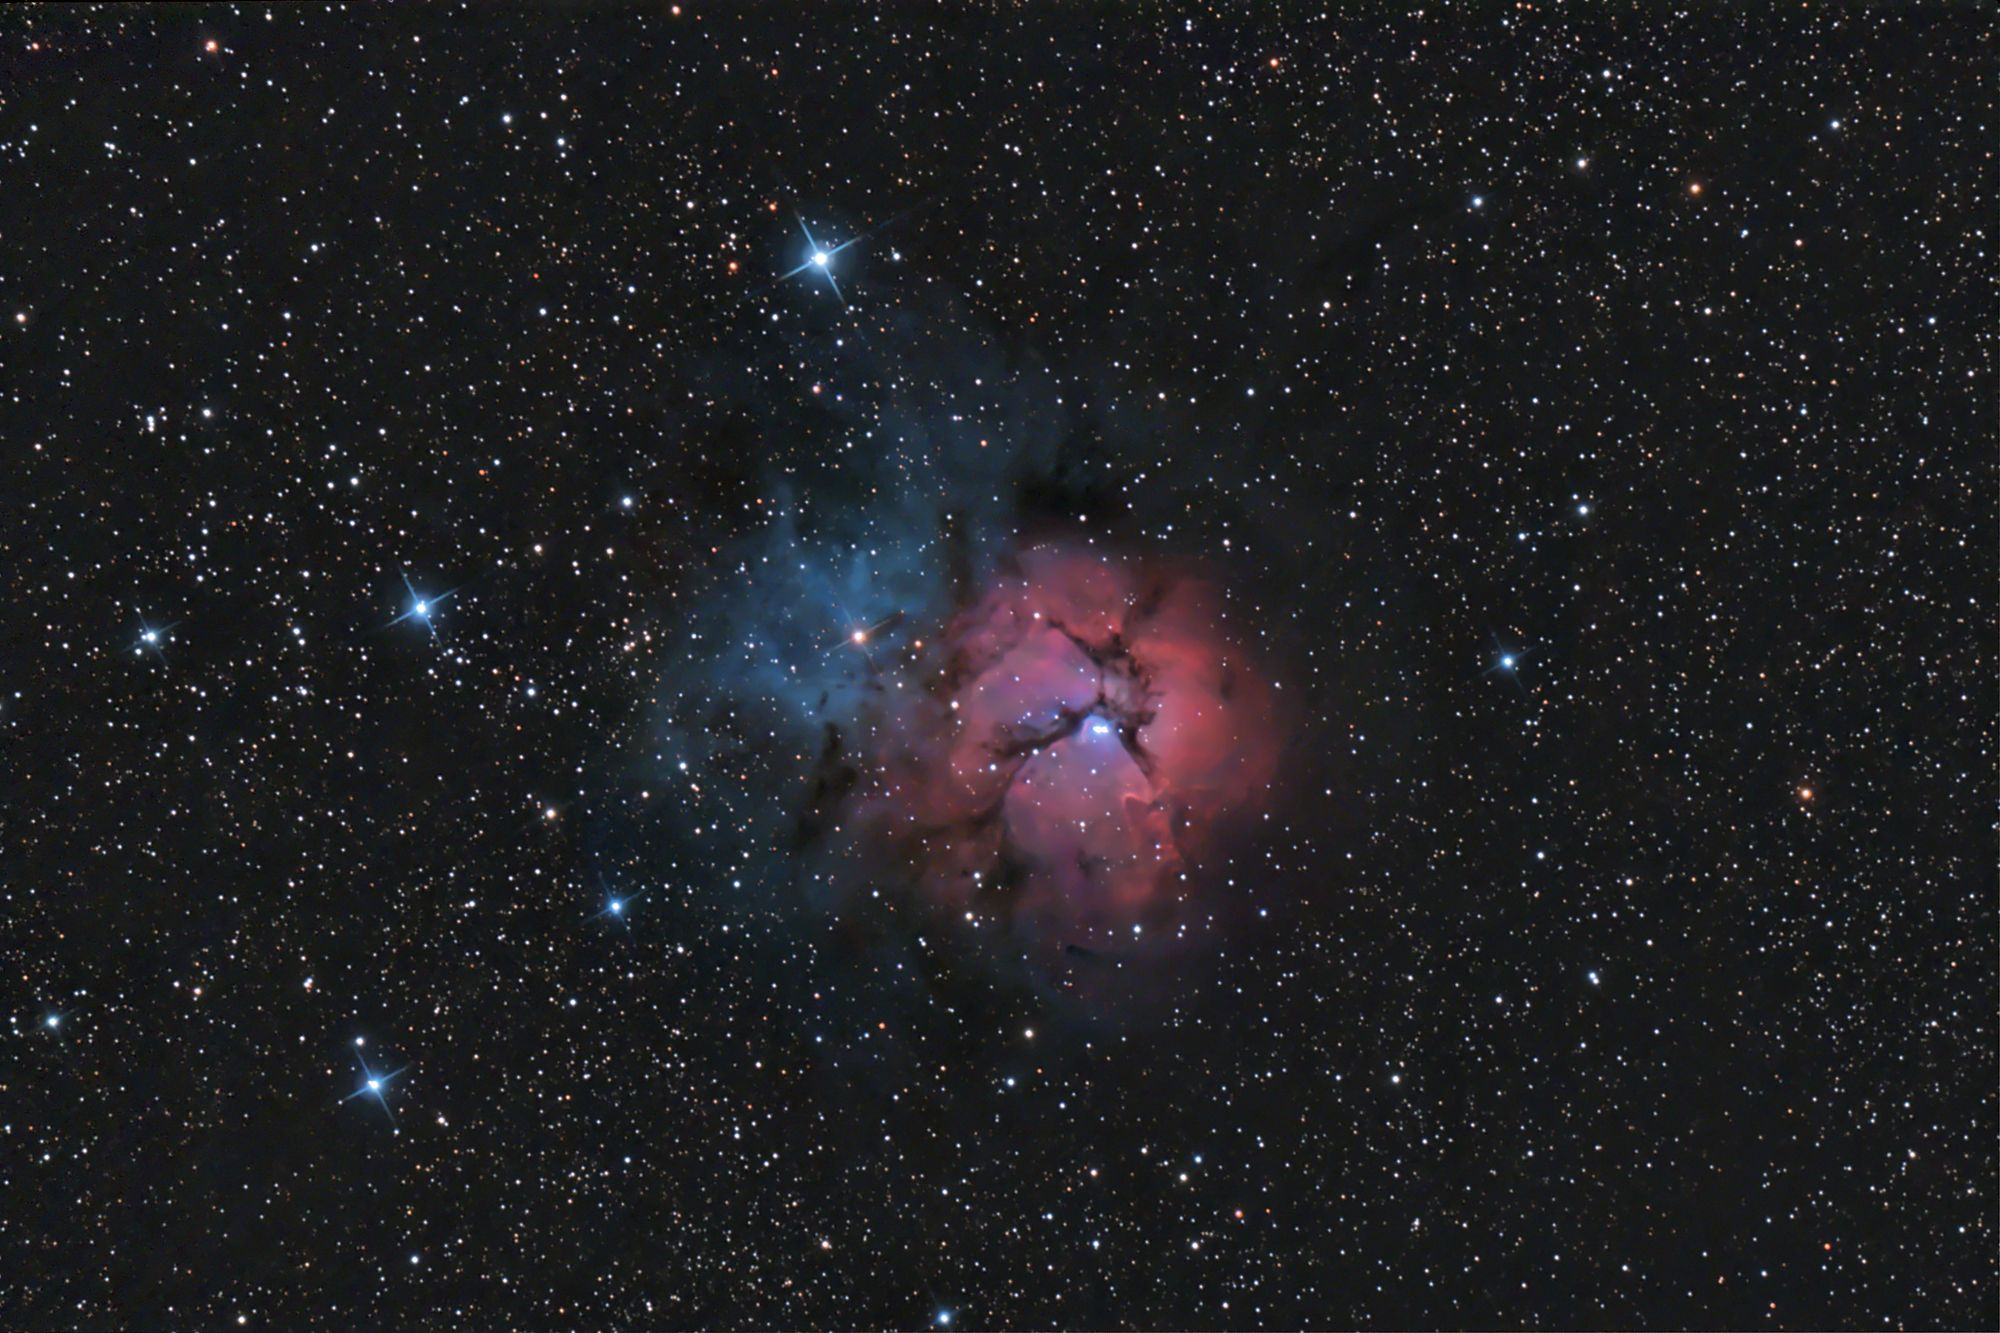 M20 - The Trifid Nebula | Astronomy Pictures at Orion ...